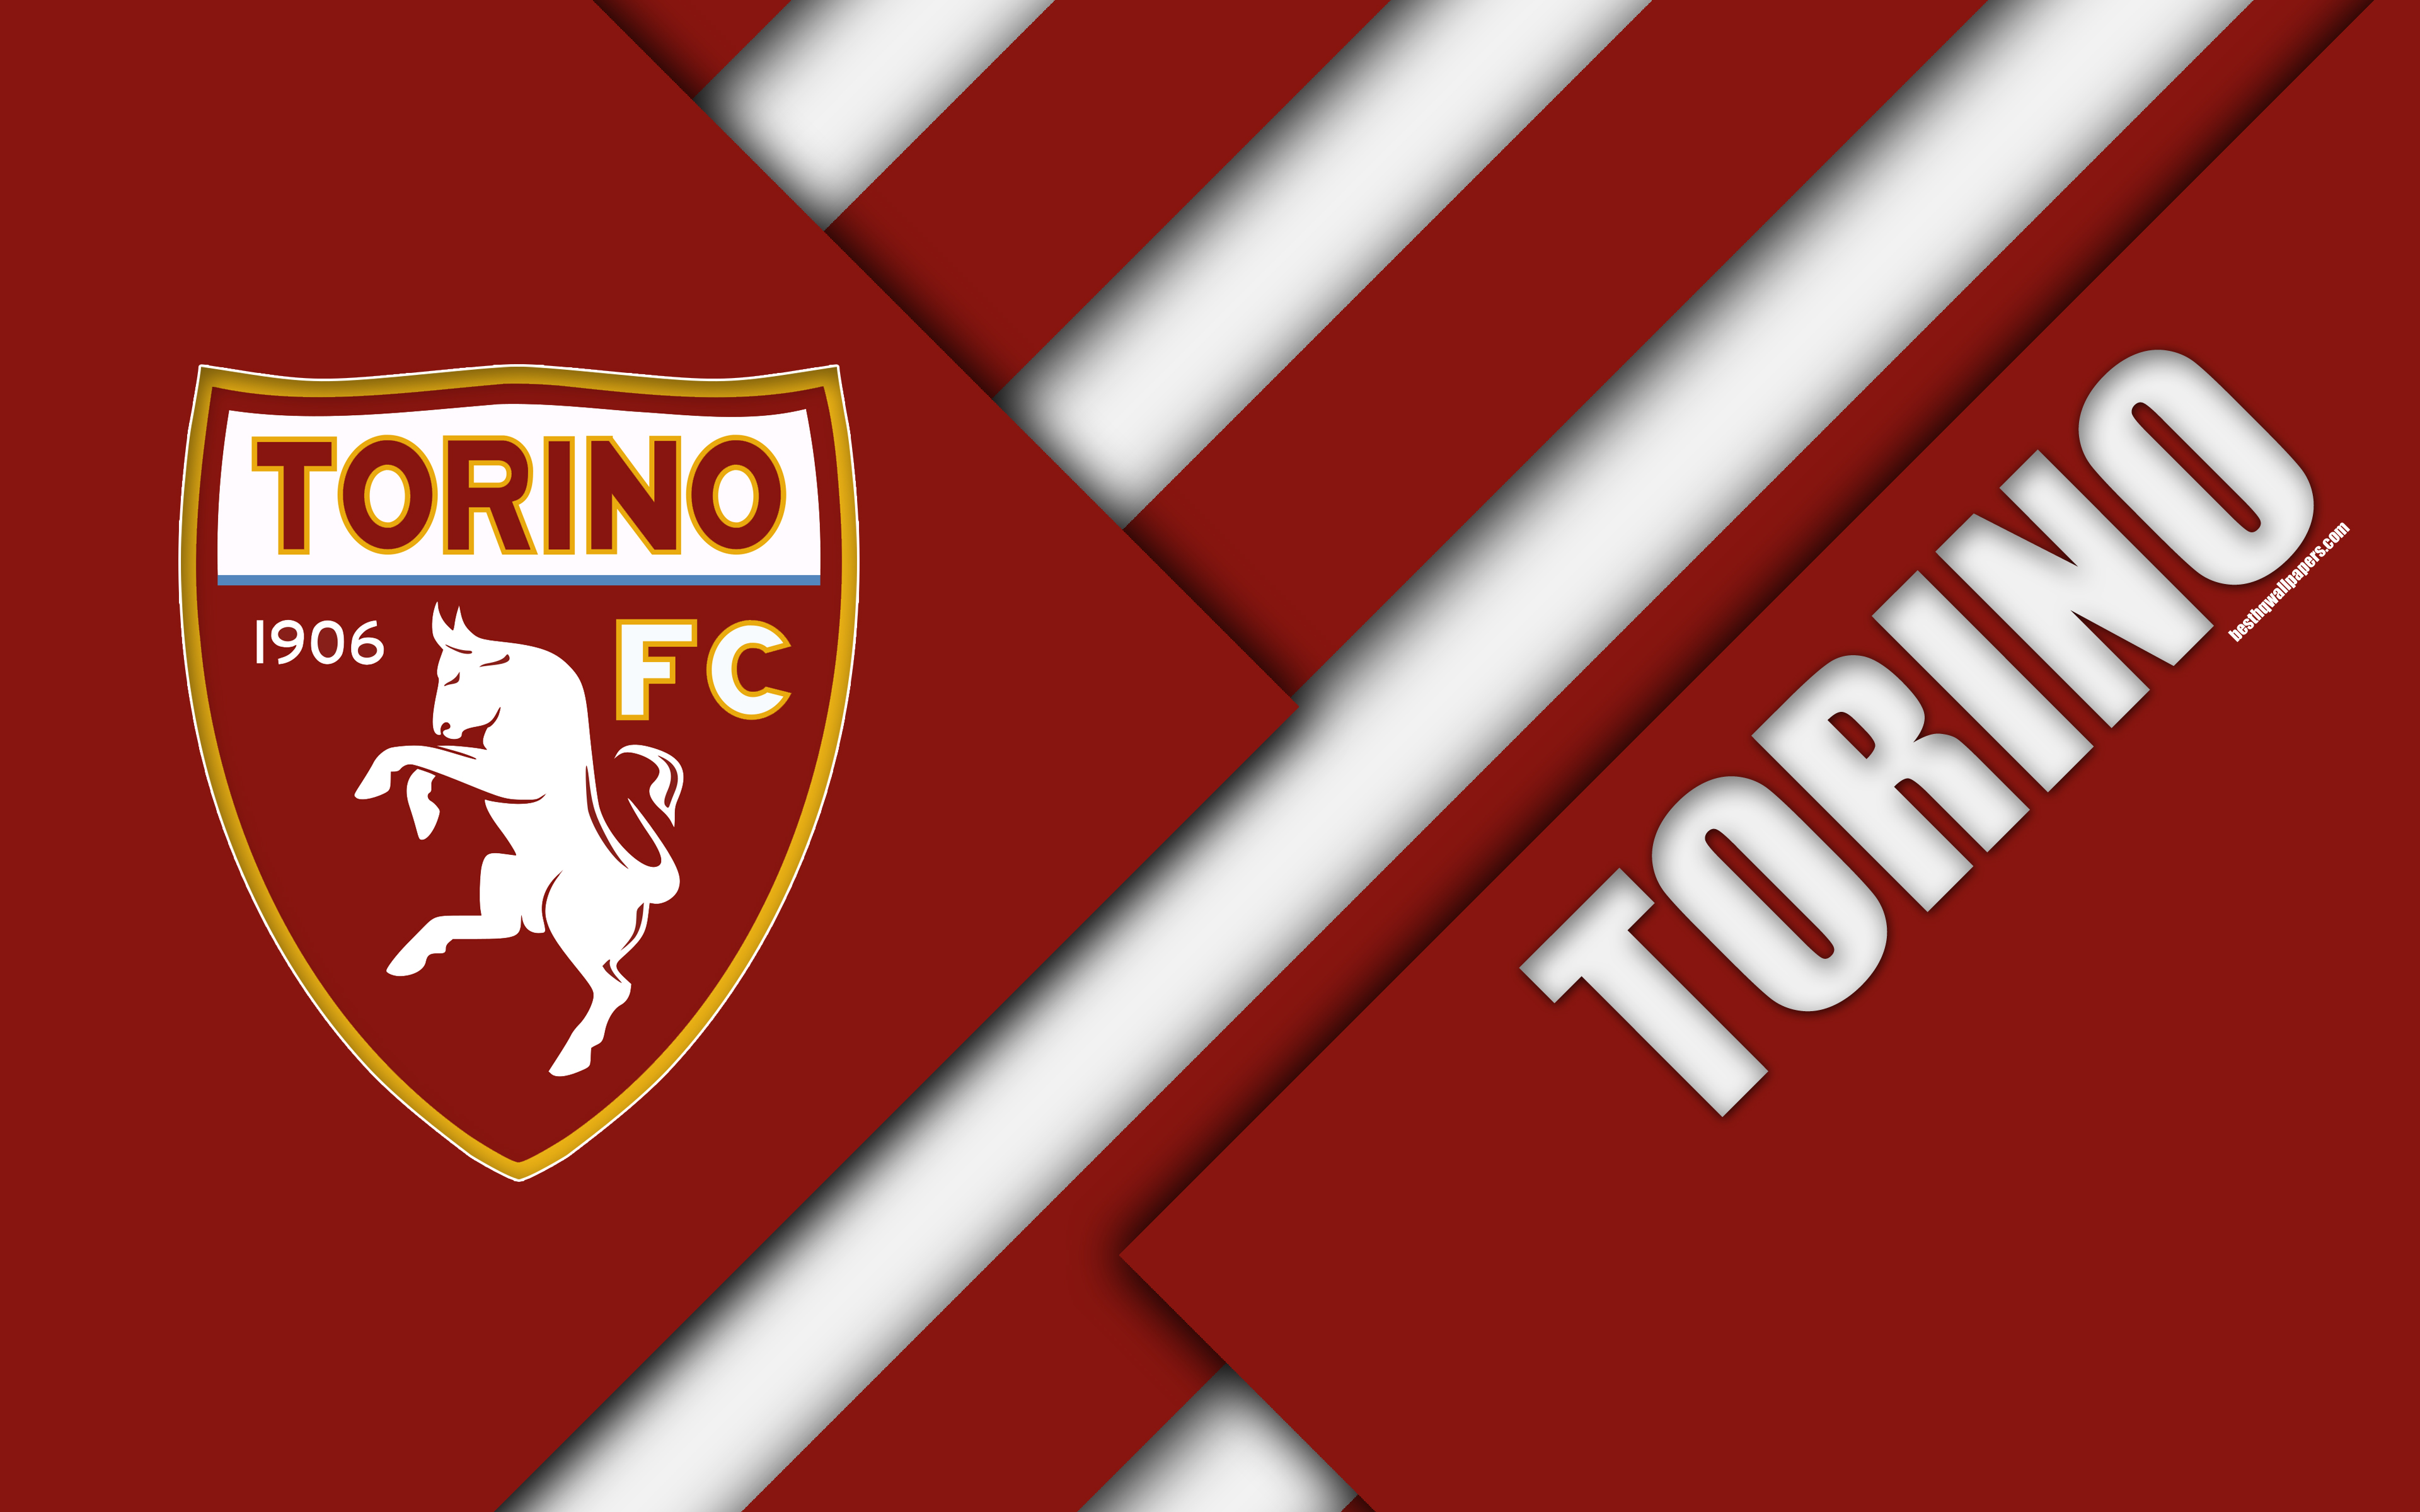 Download wallpapers Torino FC, logo, 4k, material design, football